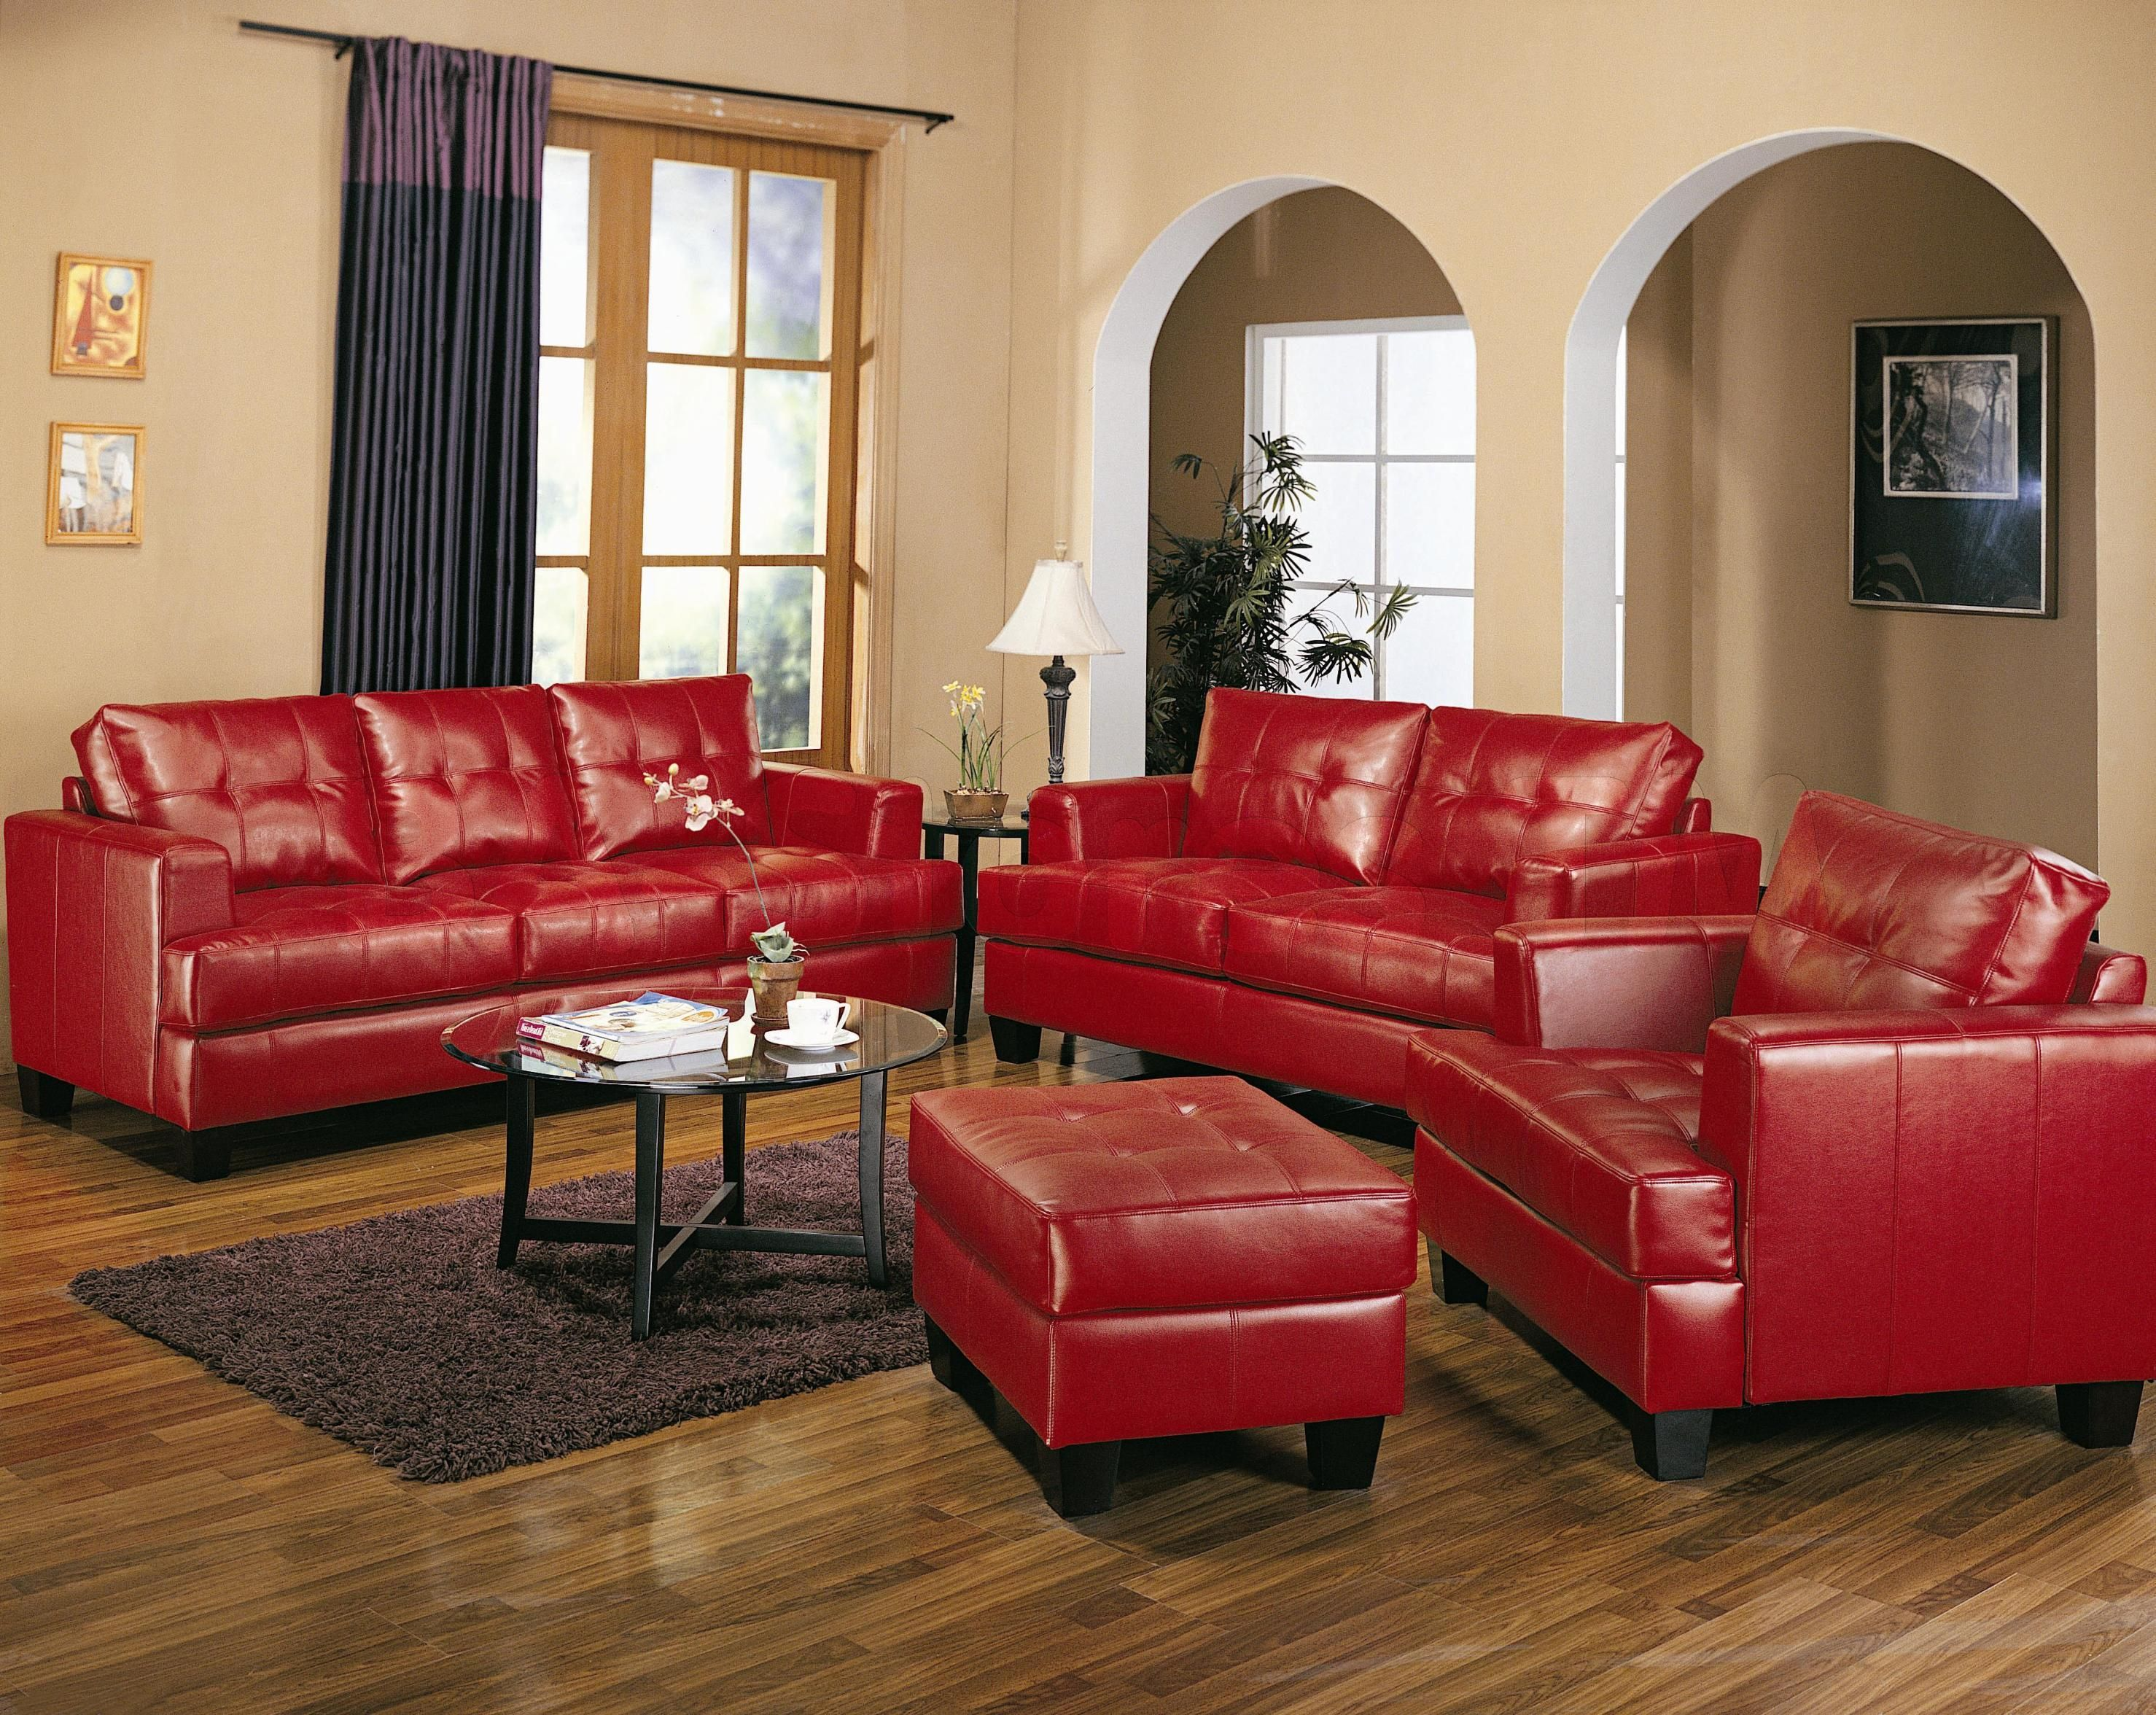 Casual 3 piece Dark Red Sofa Sectional Chaise   Matching Accent ...